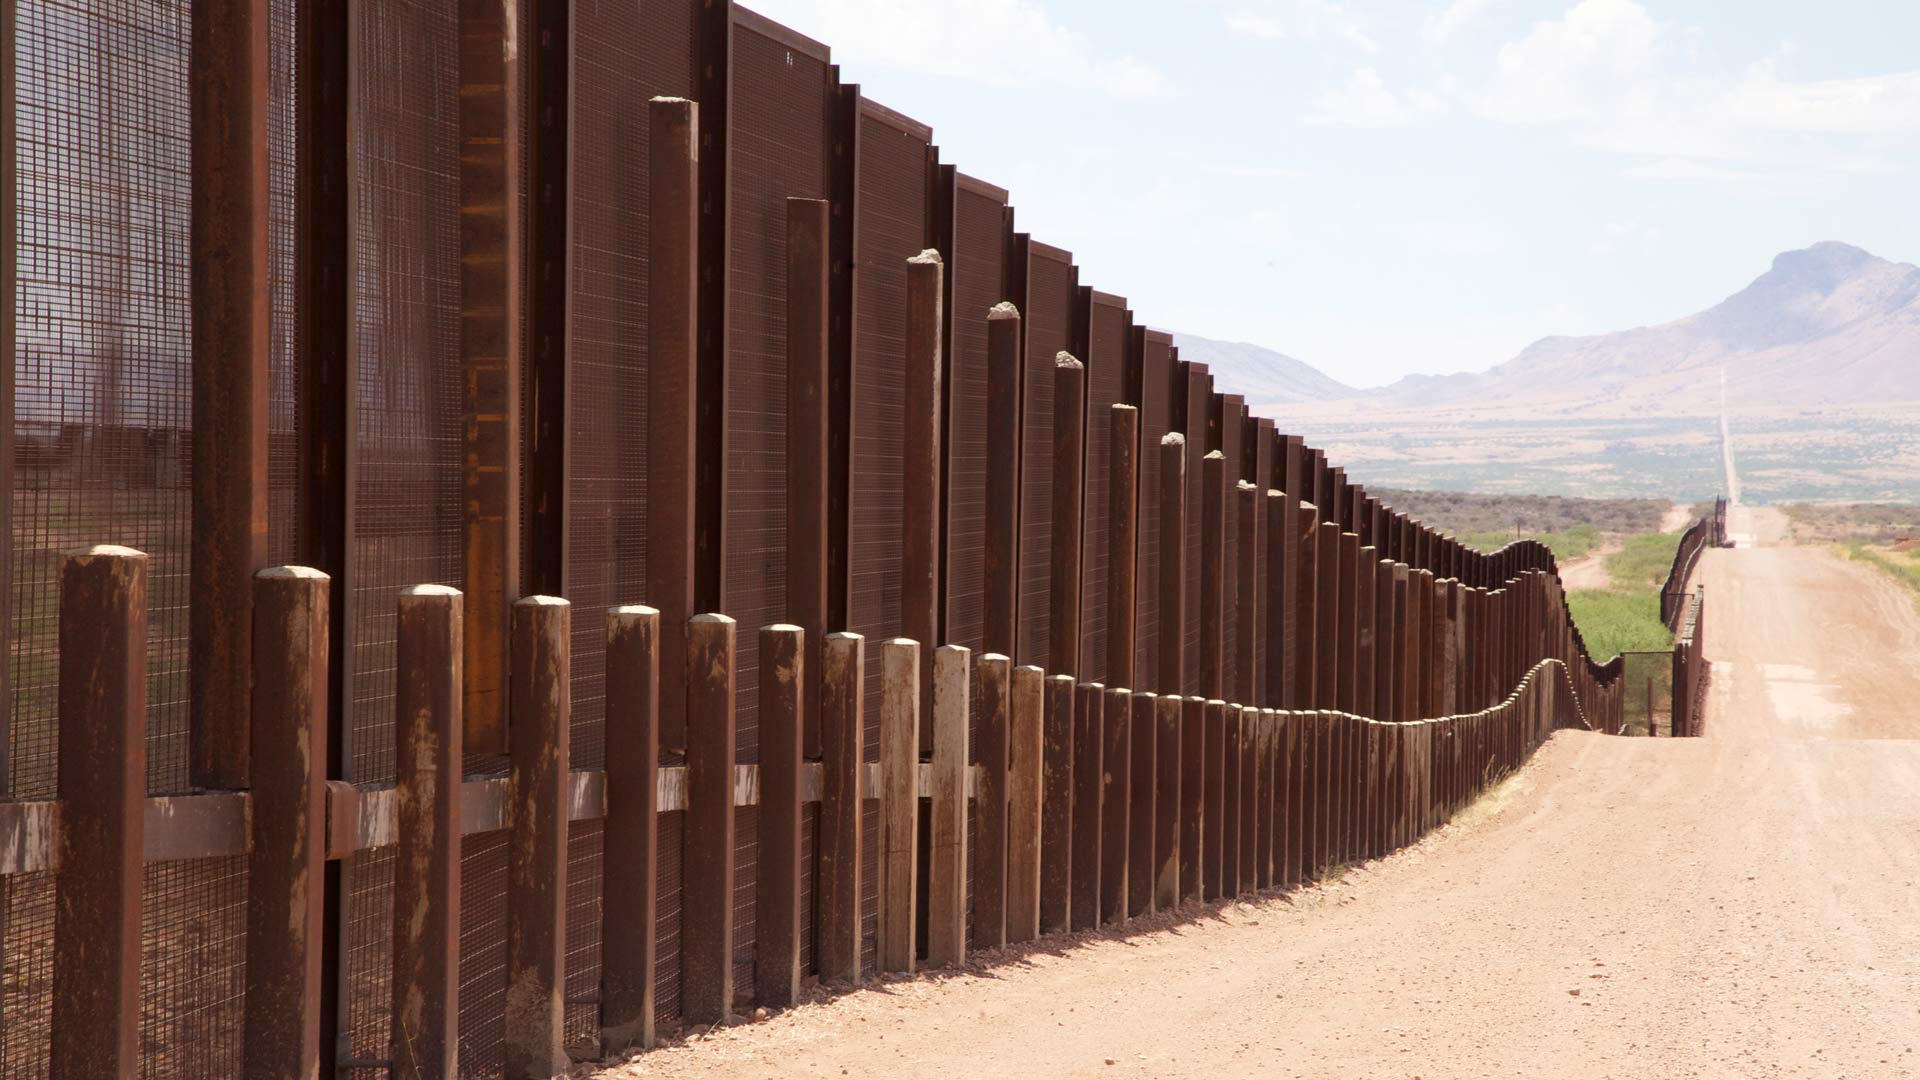 U.S. Border Wall, Illegal Immigration hero